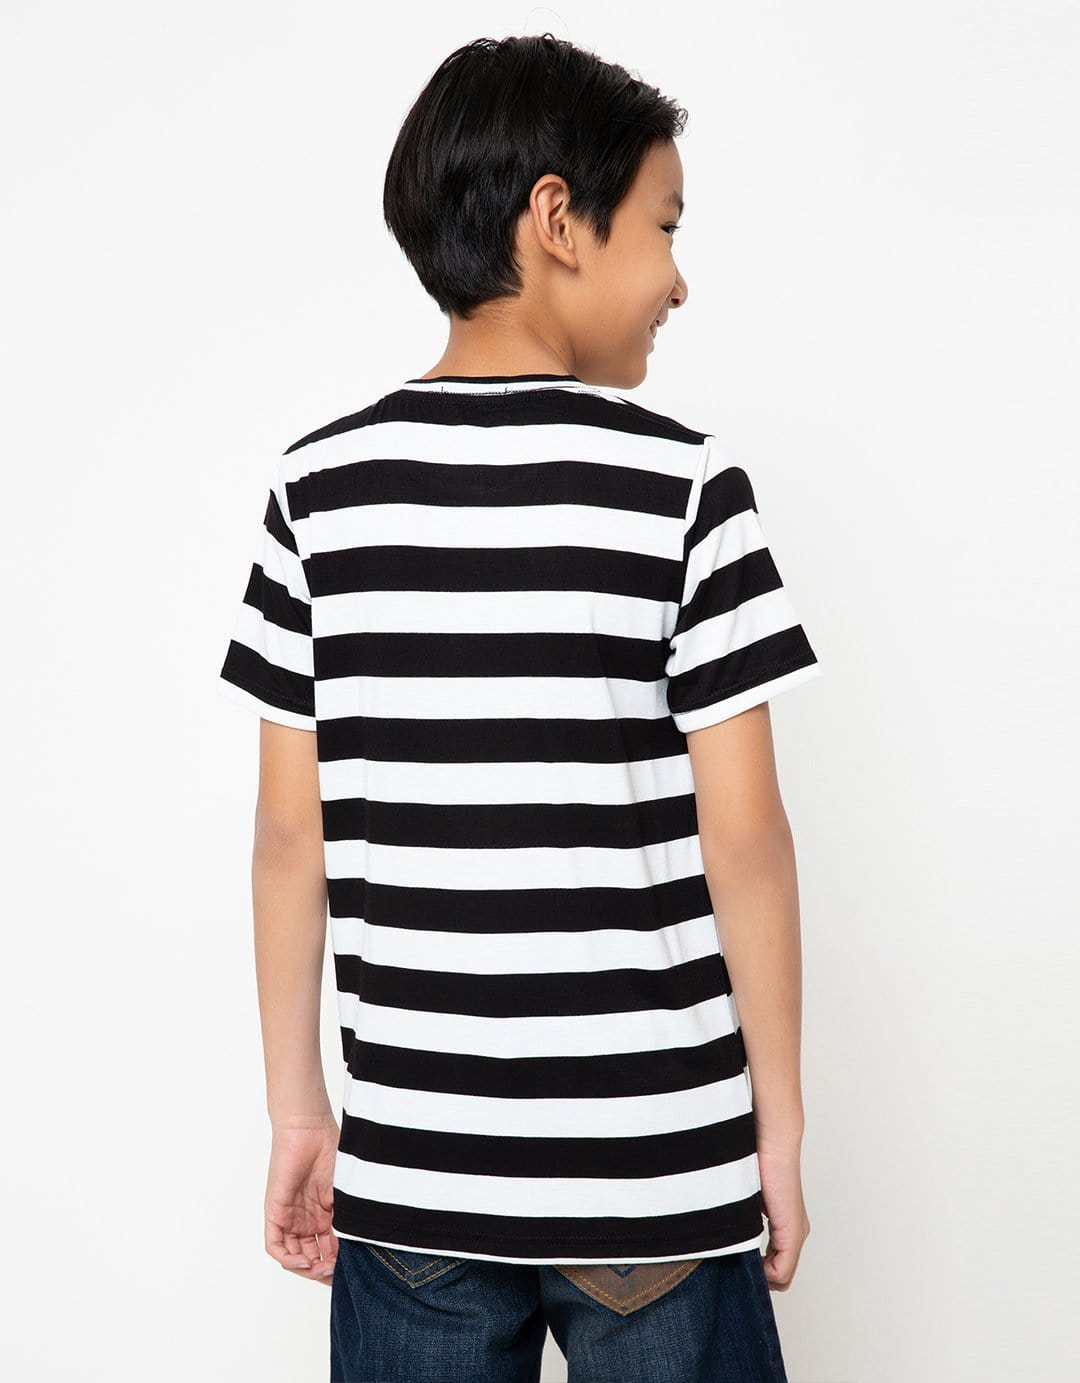 BT153 thirdday kaos anak tido flying stripe hitam putih